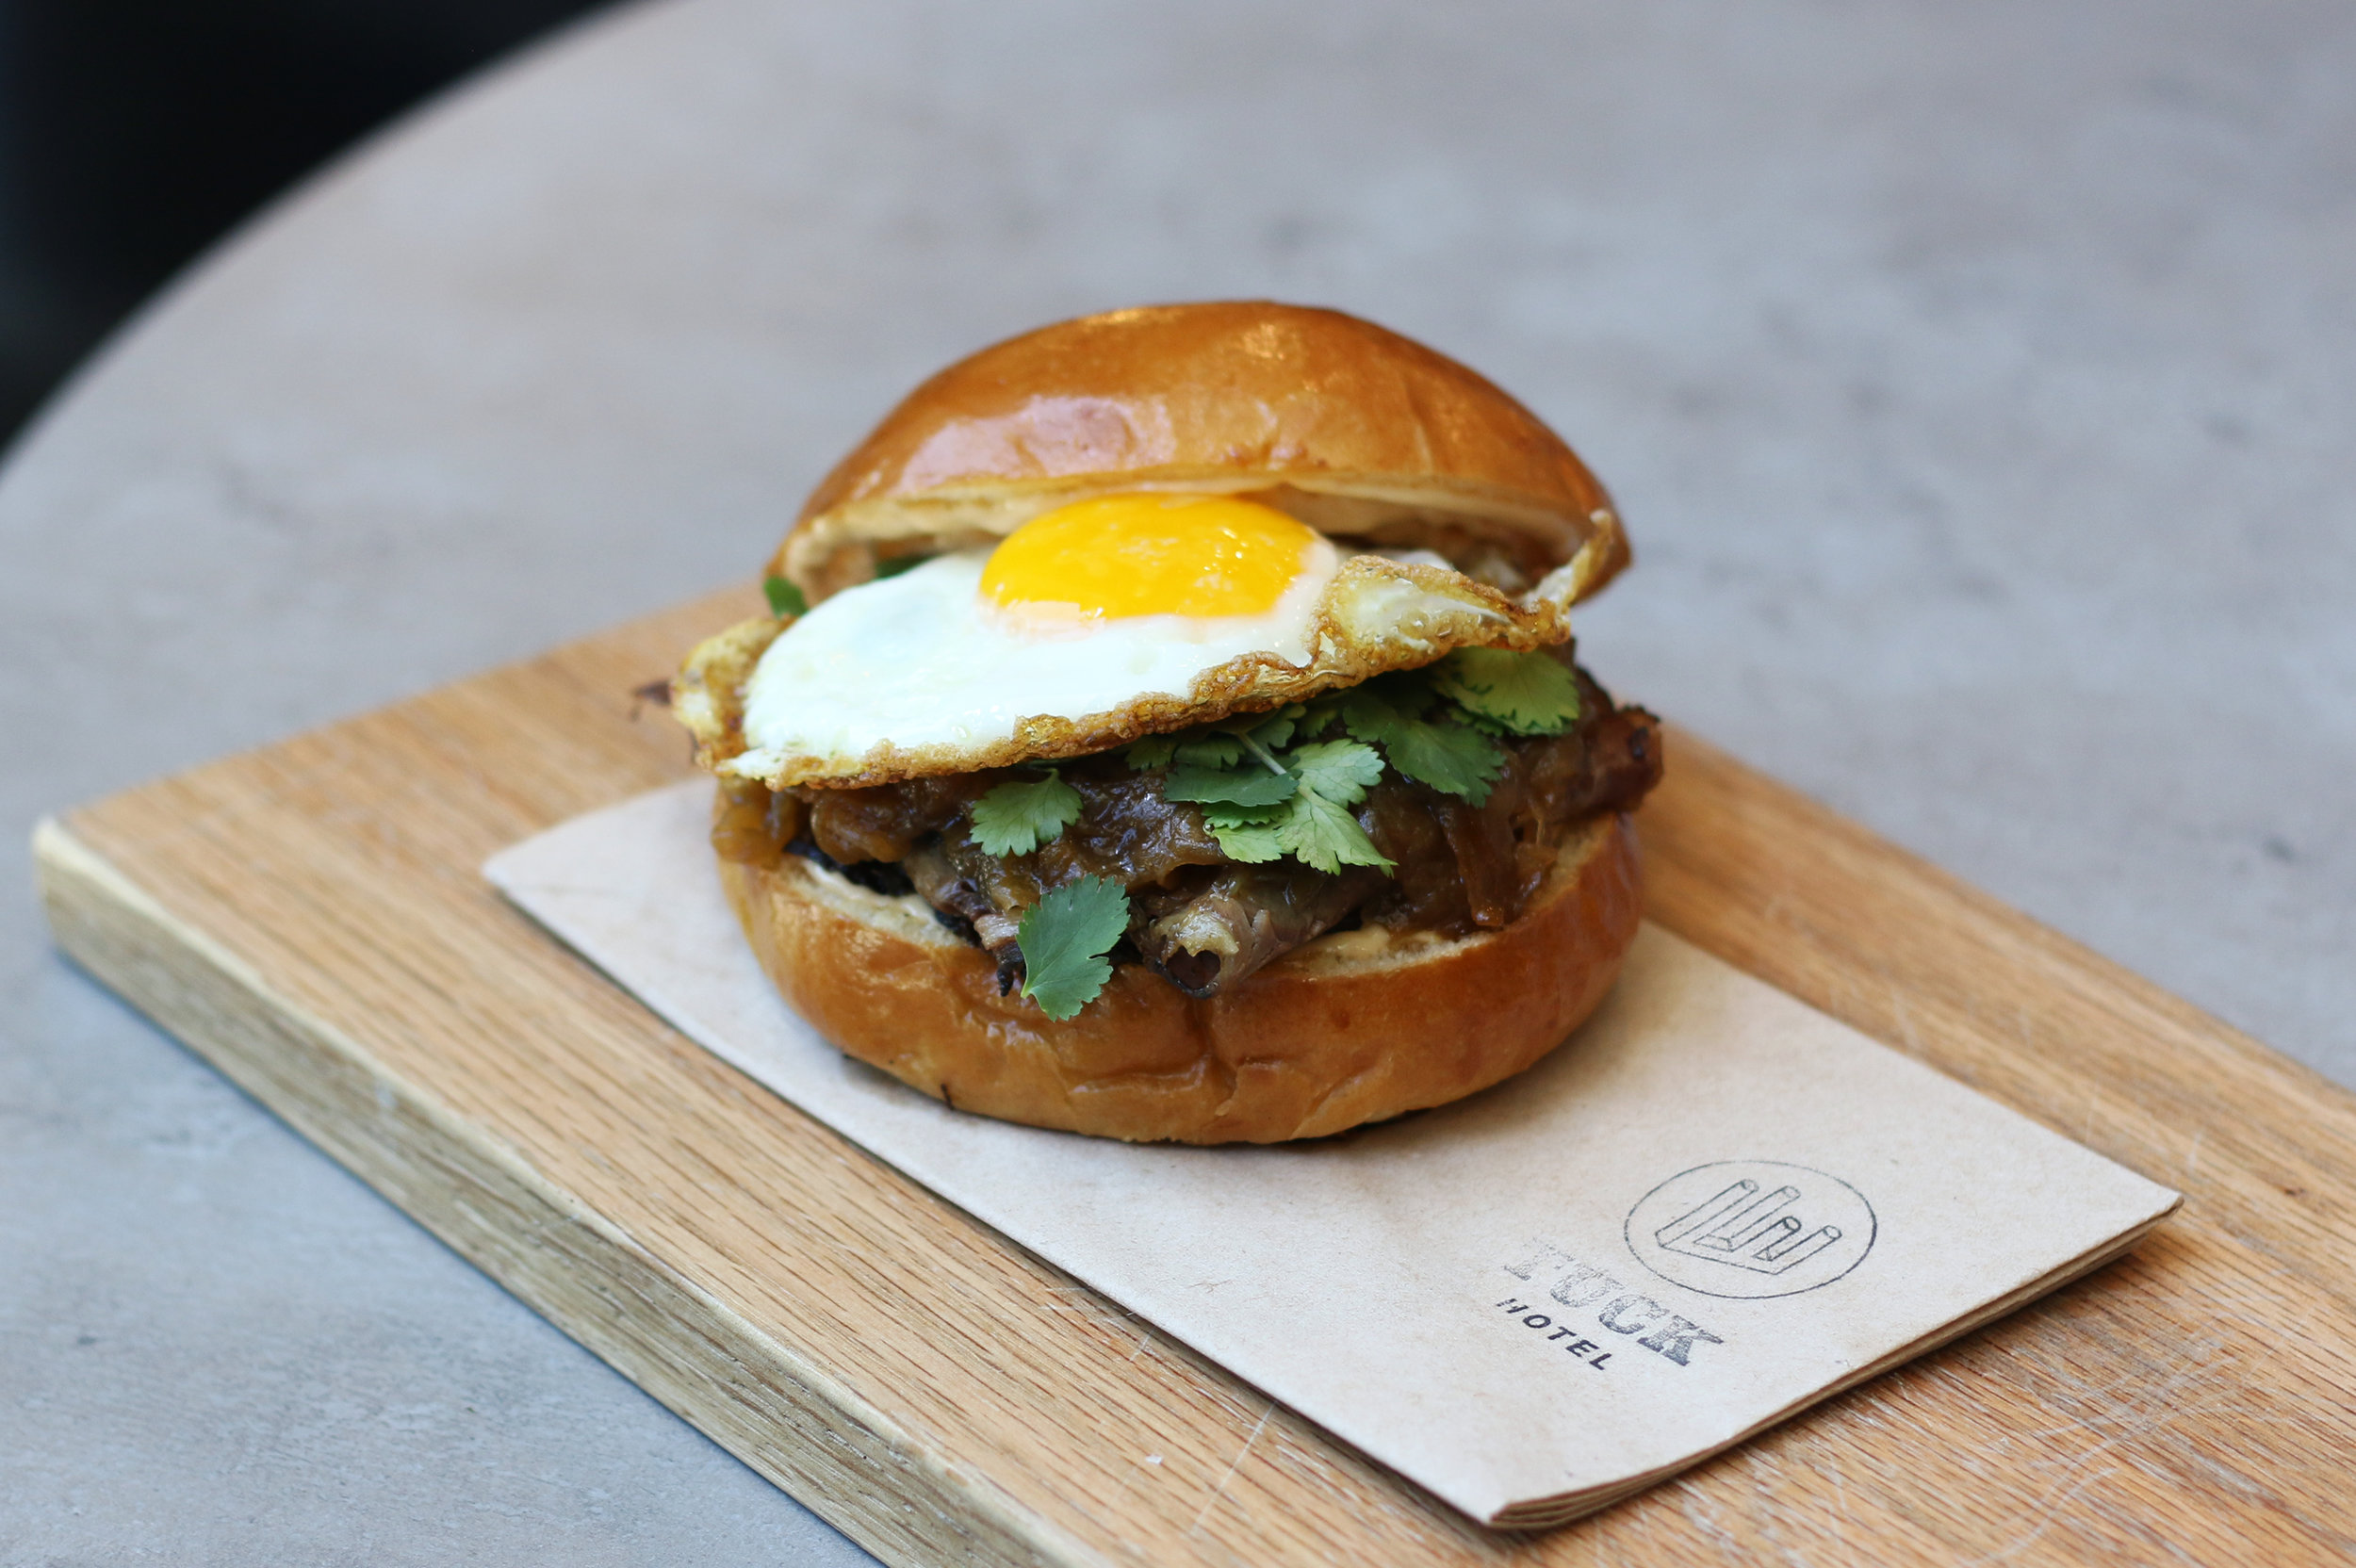 24 Hour Smoked Brisket Sandwich with a Fried Egg